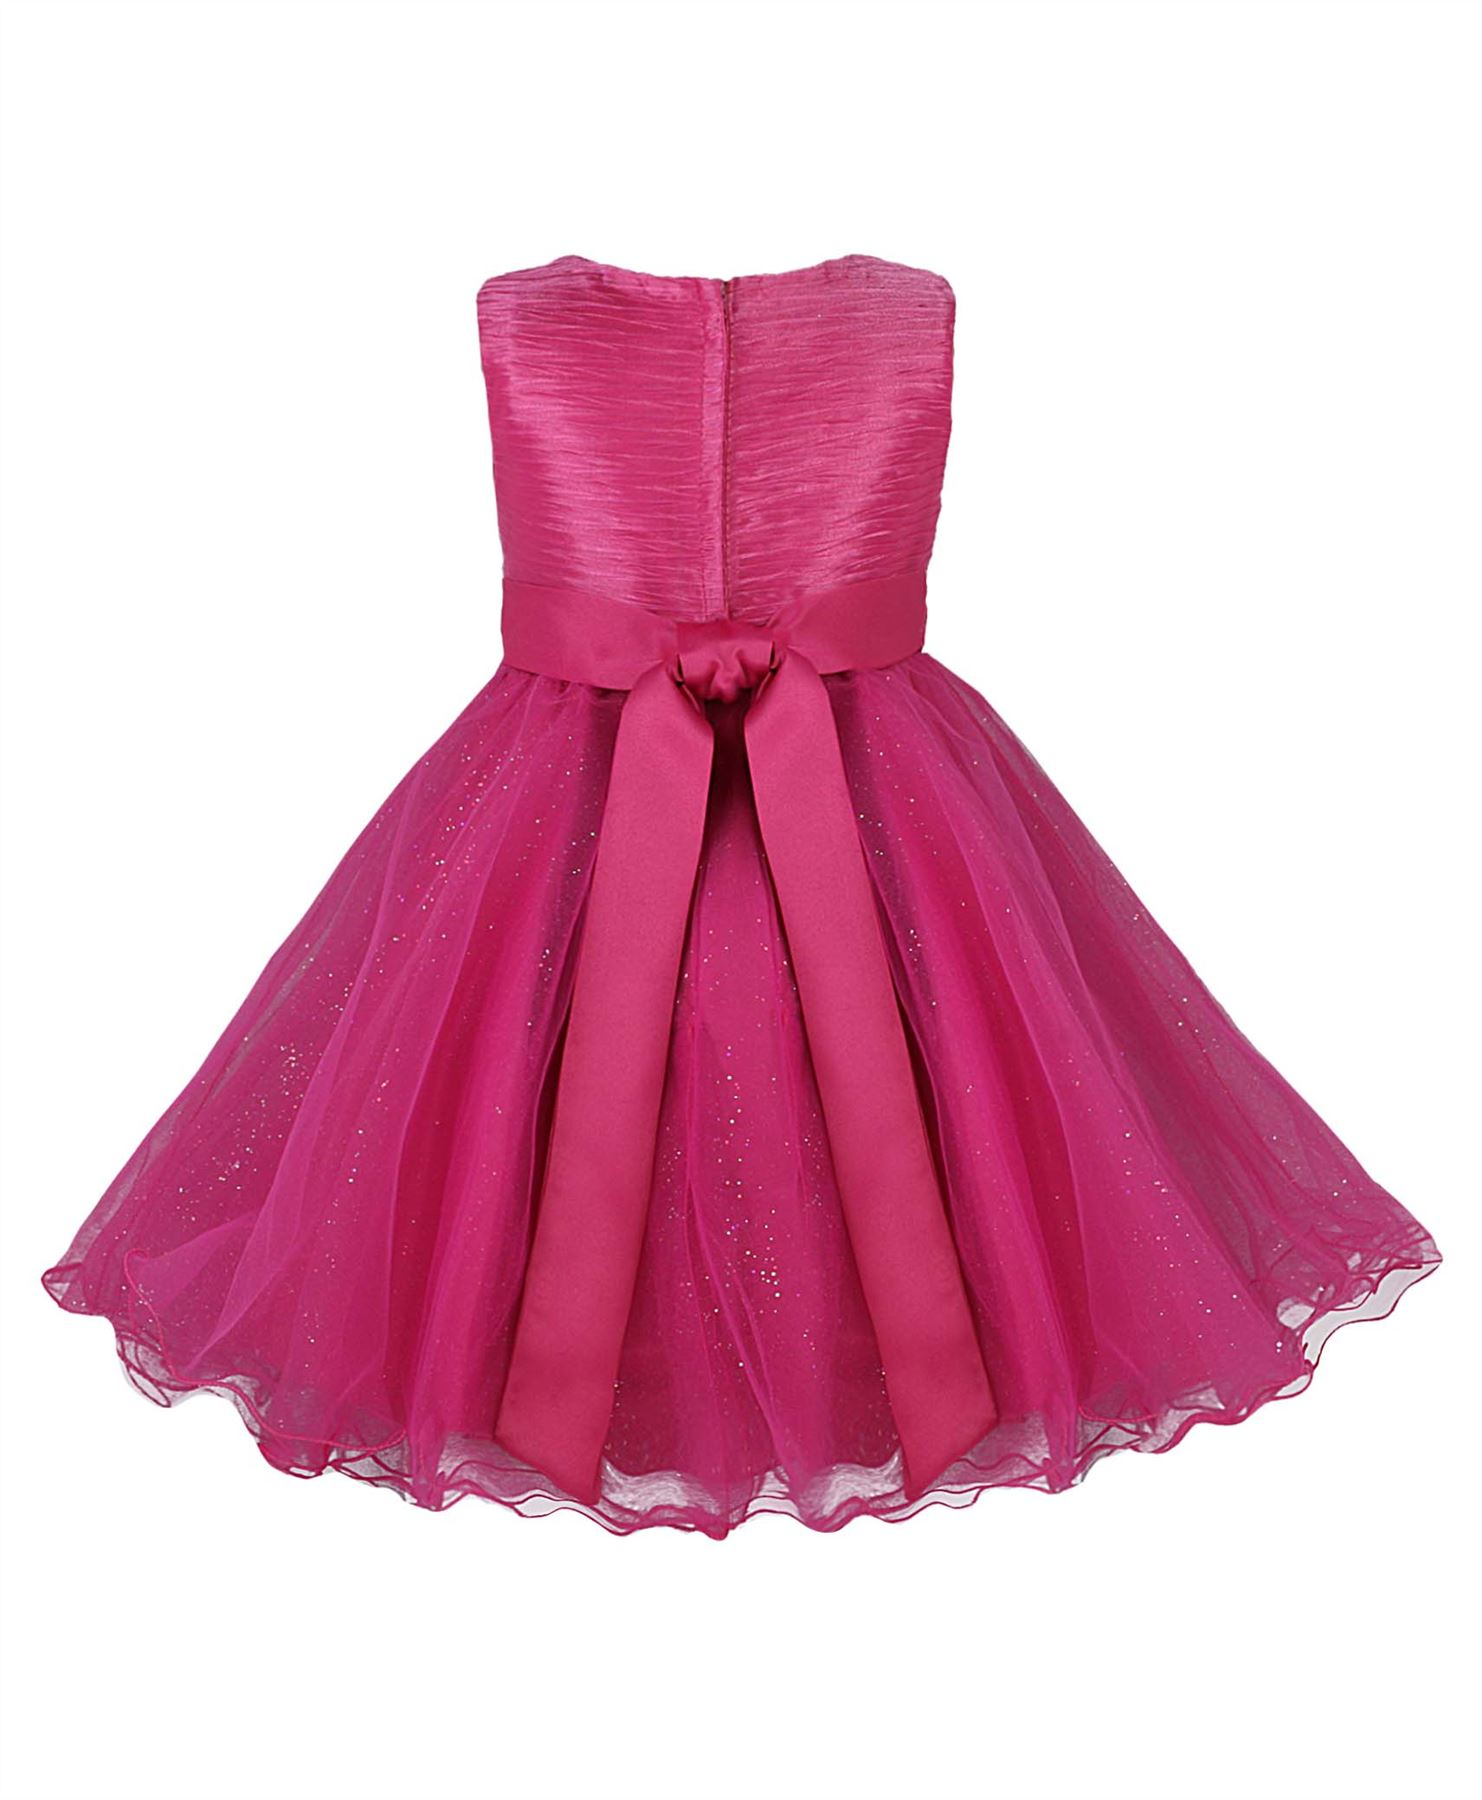 Girls Party Dresses Bow Detail Flower Girl Wedding Pageant